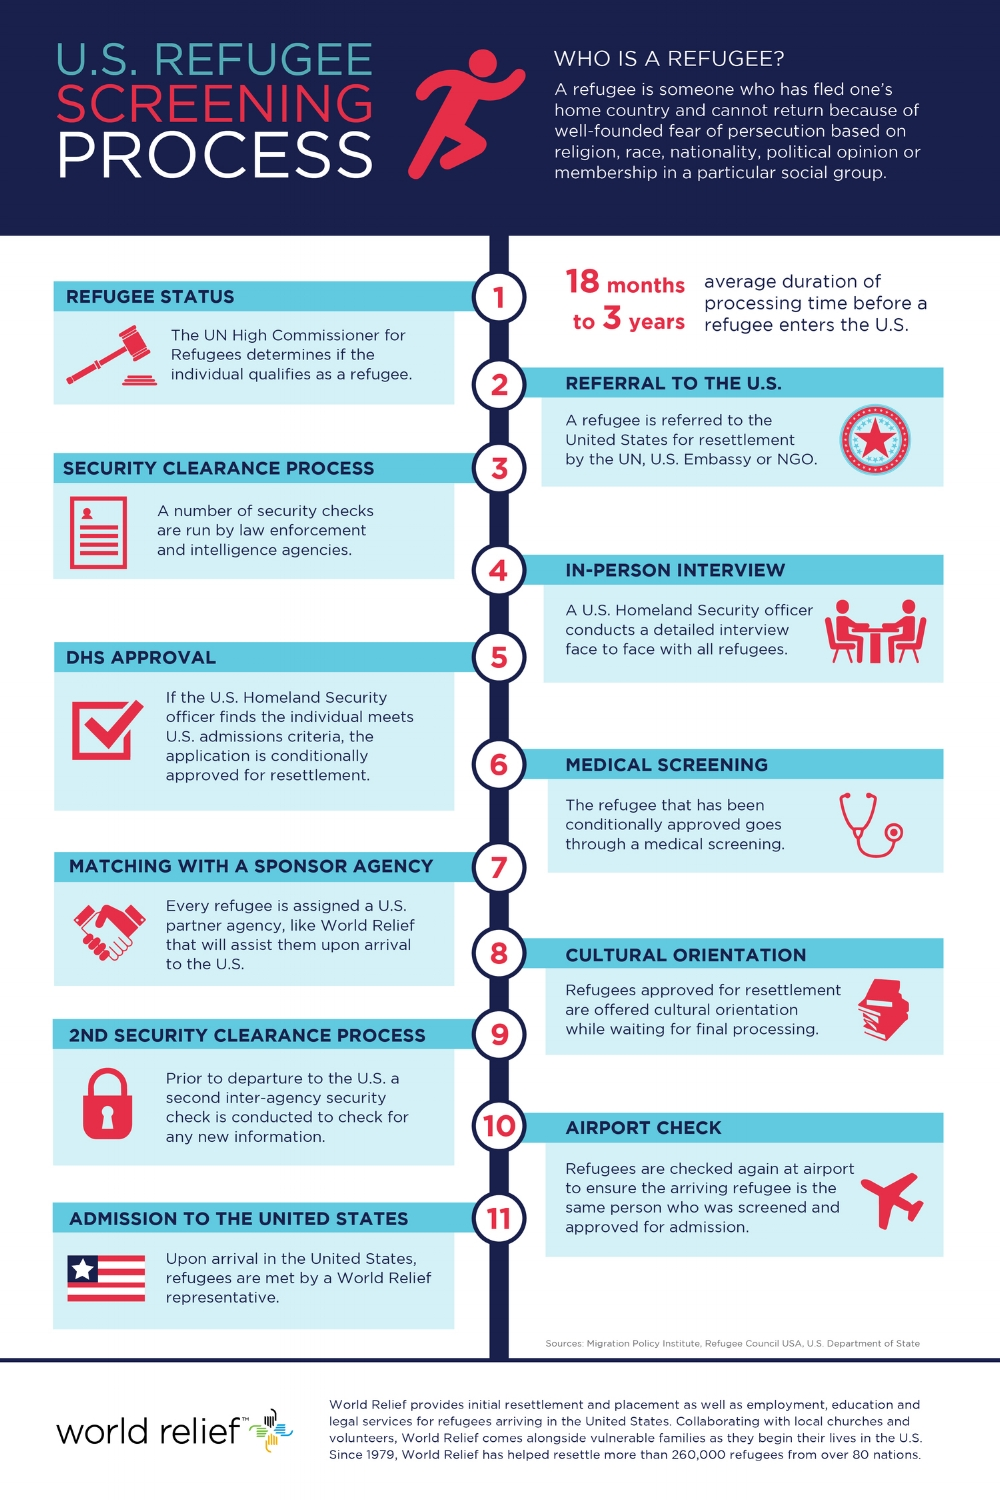 Official refugee screening process. Source: worldrelief.org